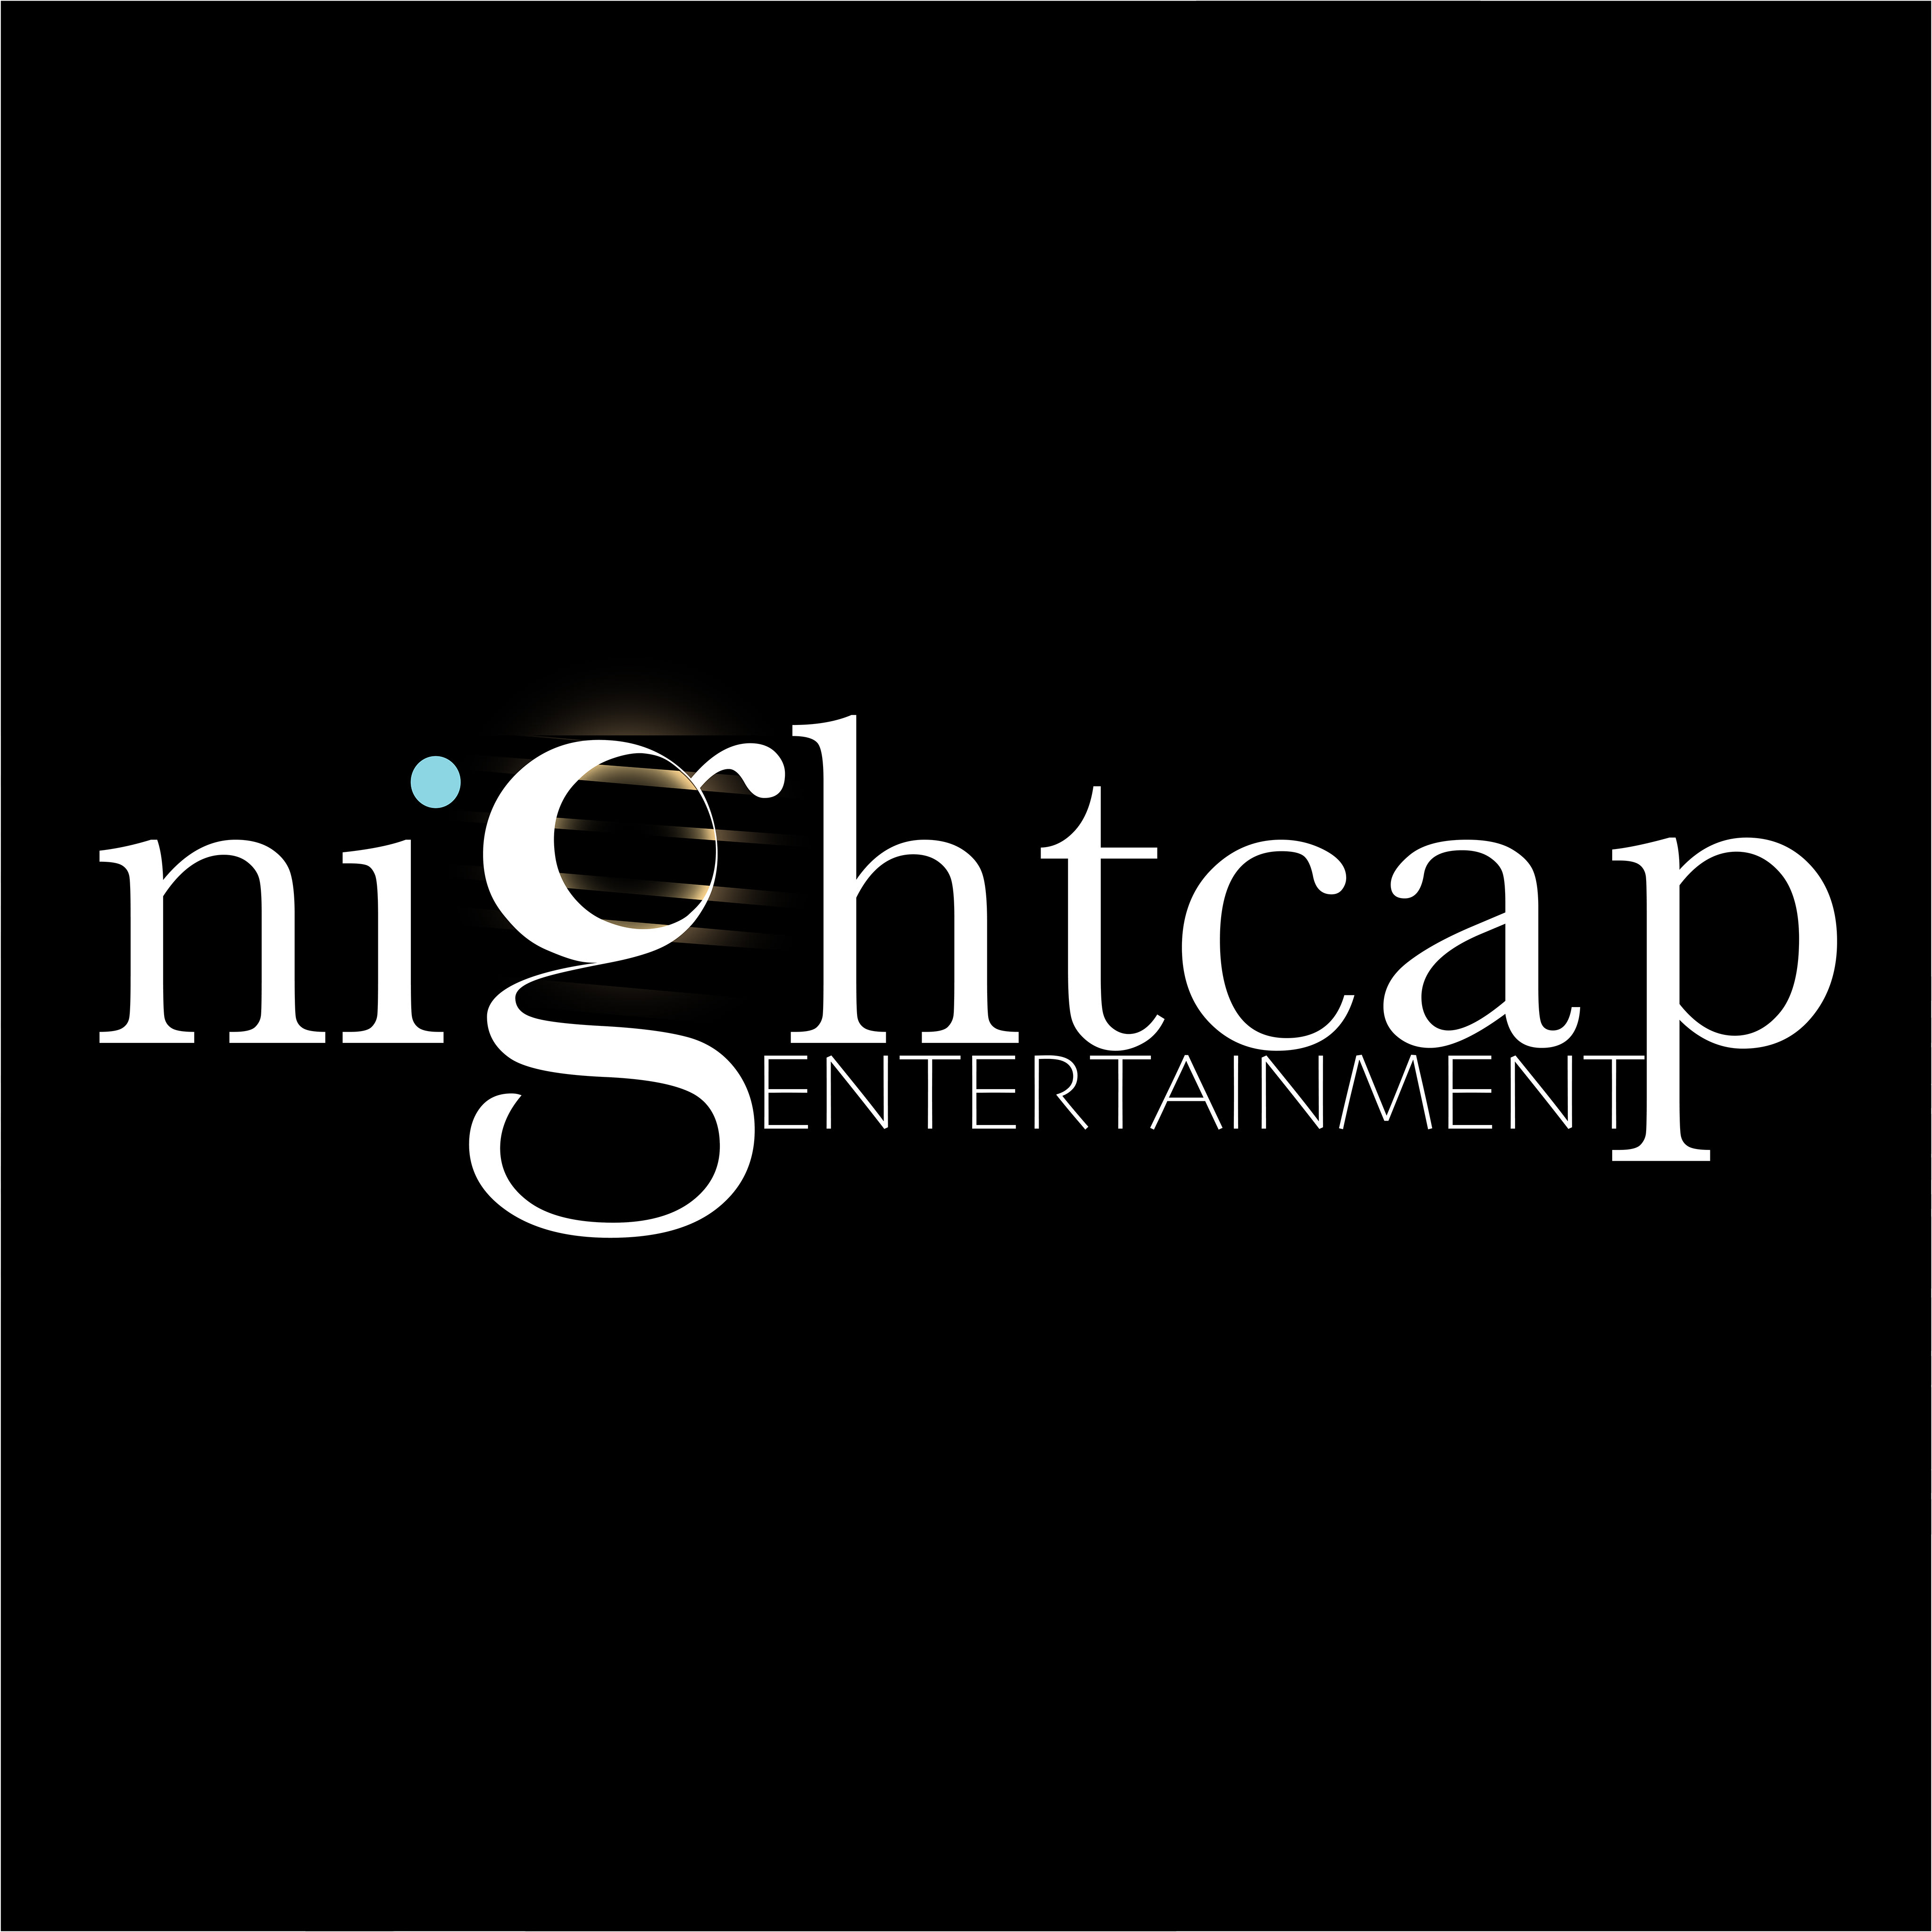 Nightcap Entertainment